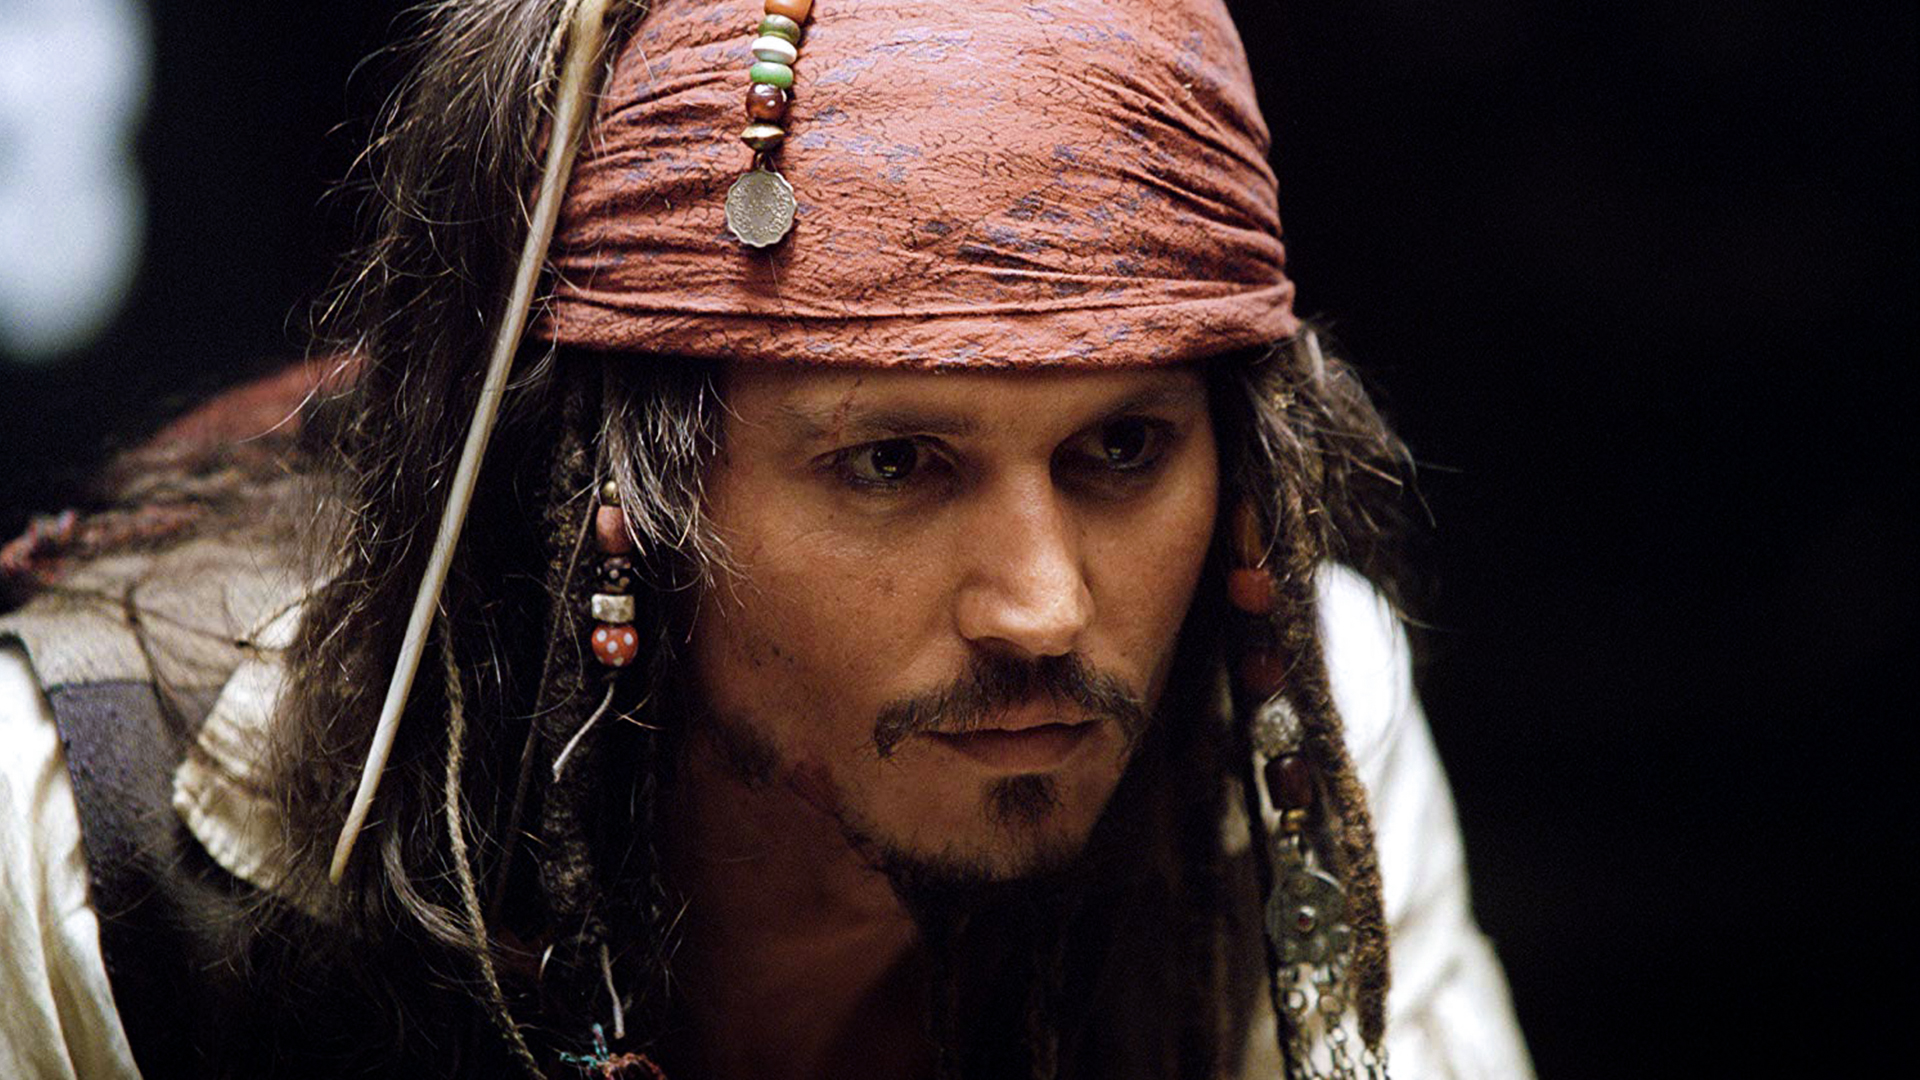 Captain-Jack-Sparrow-in-the-Pirates-of-the-Caribbean